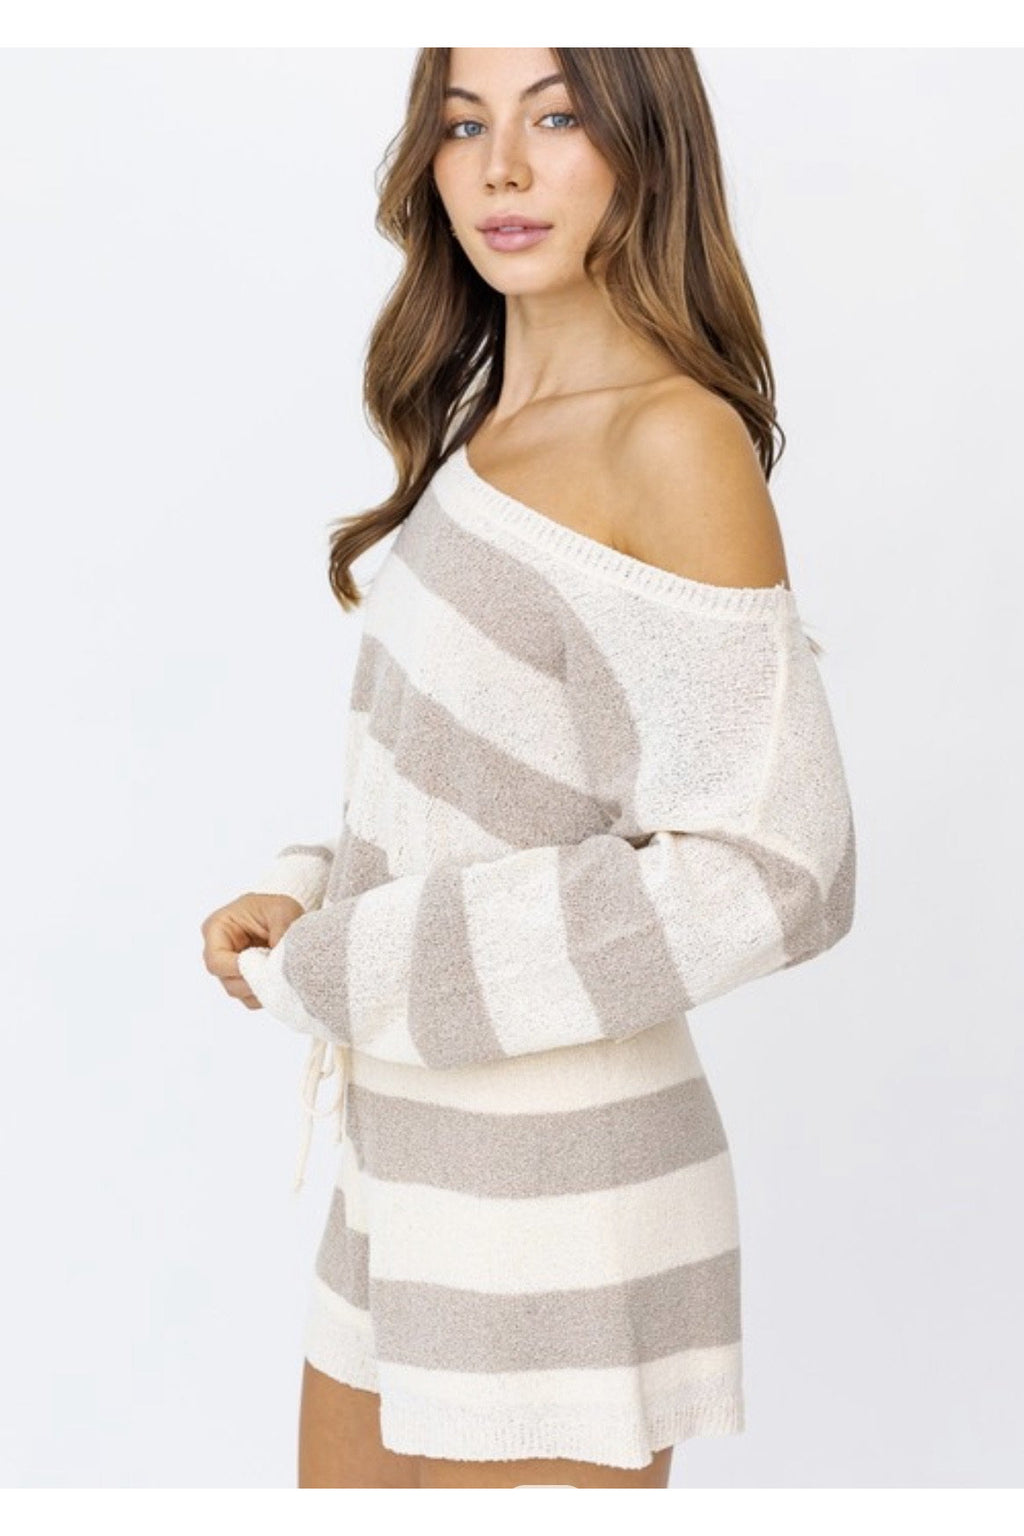 Zara Striped Lounge Set $74